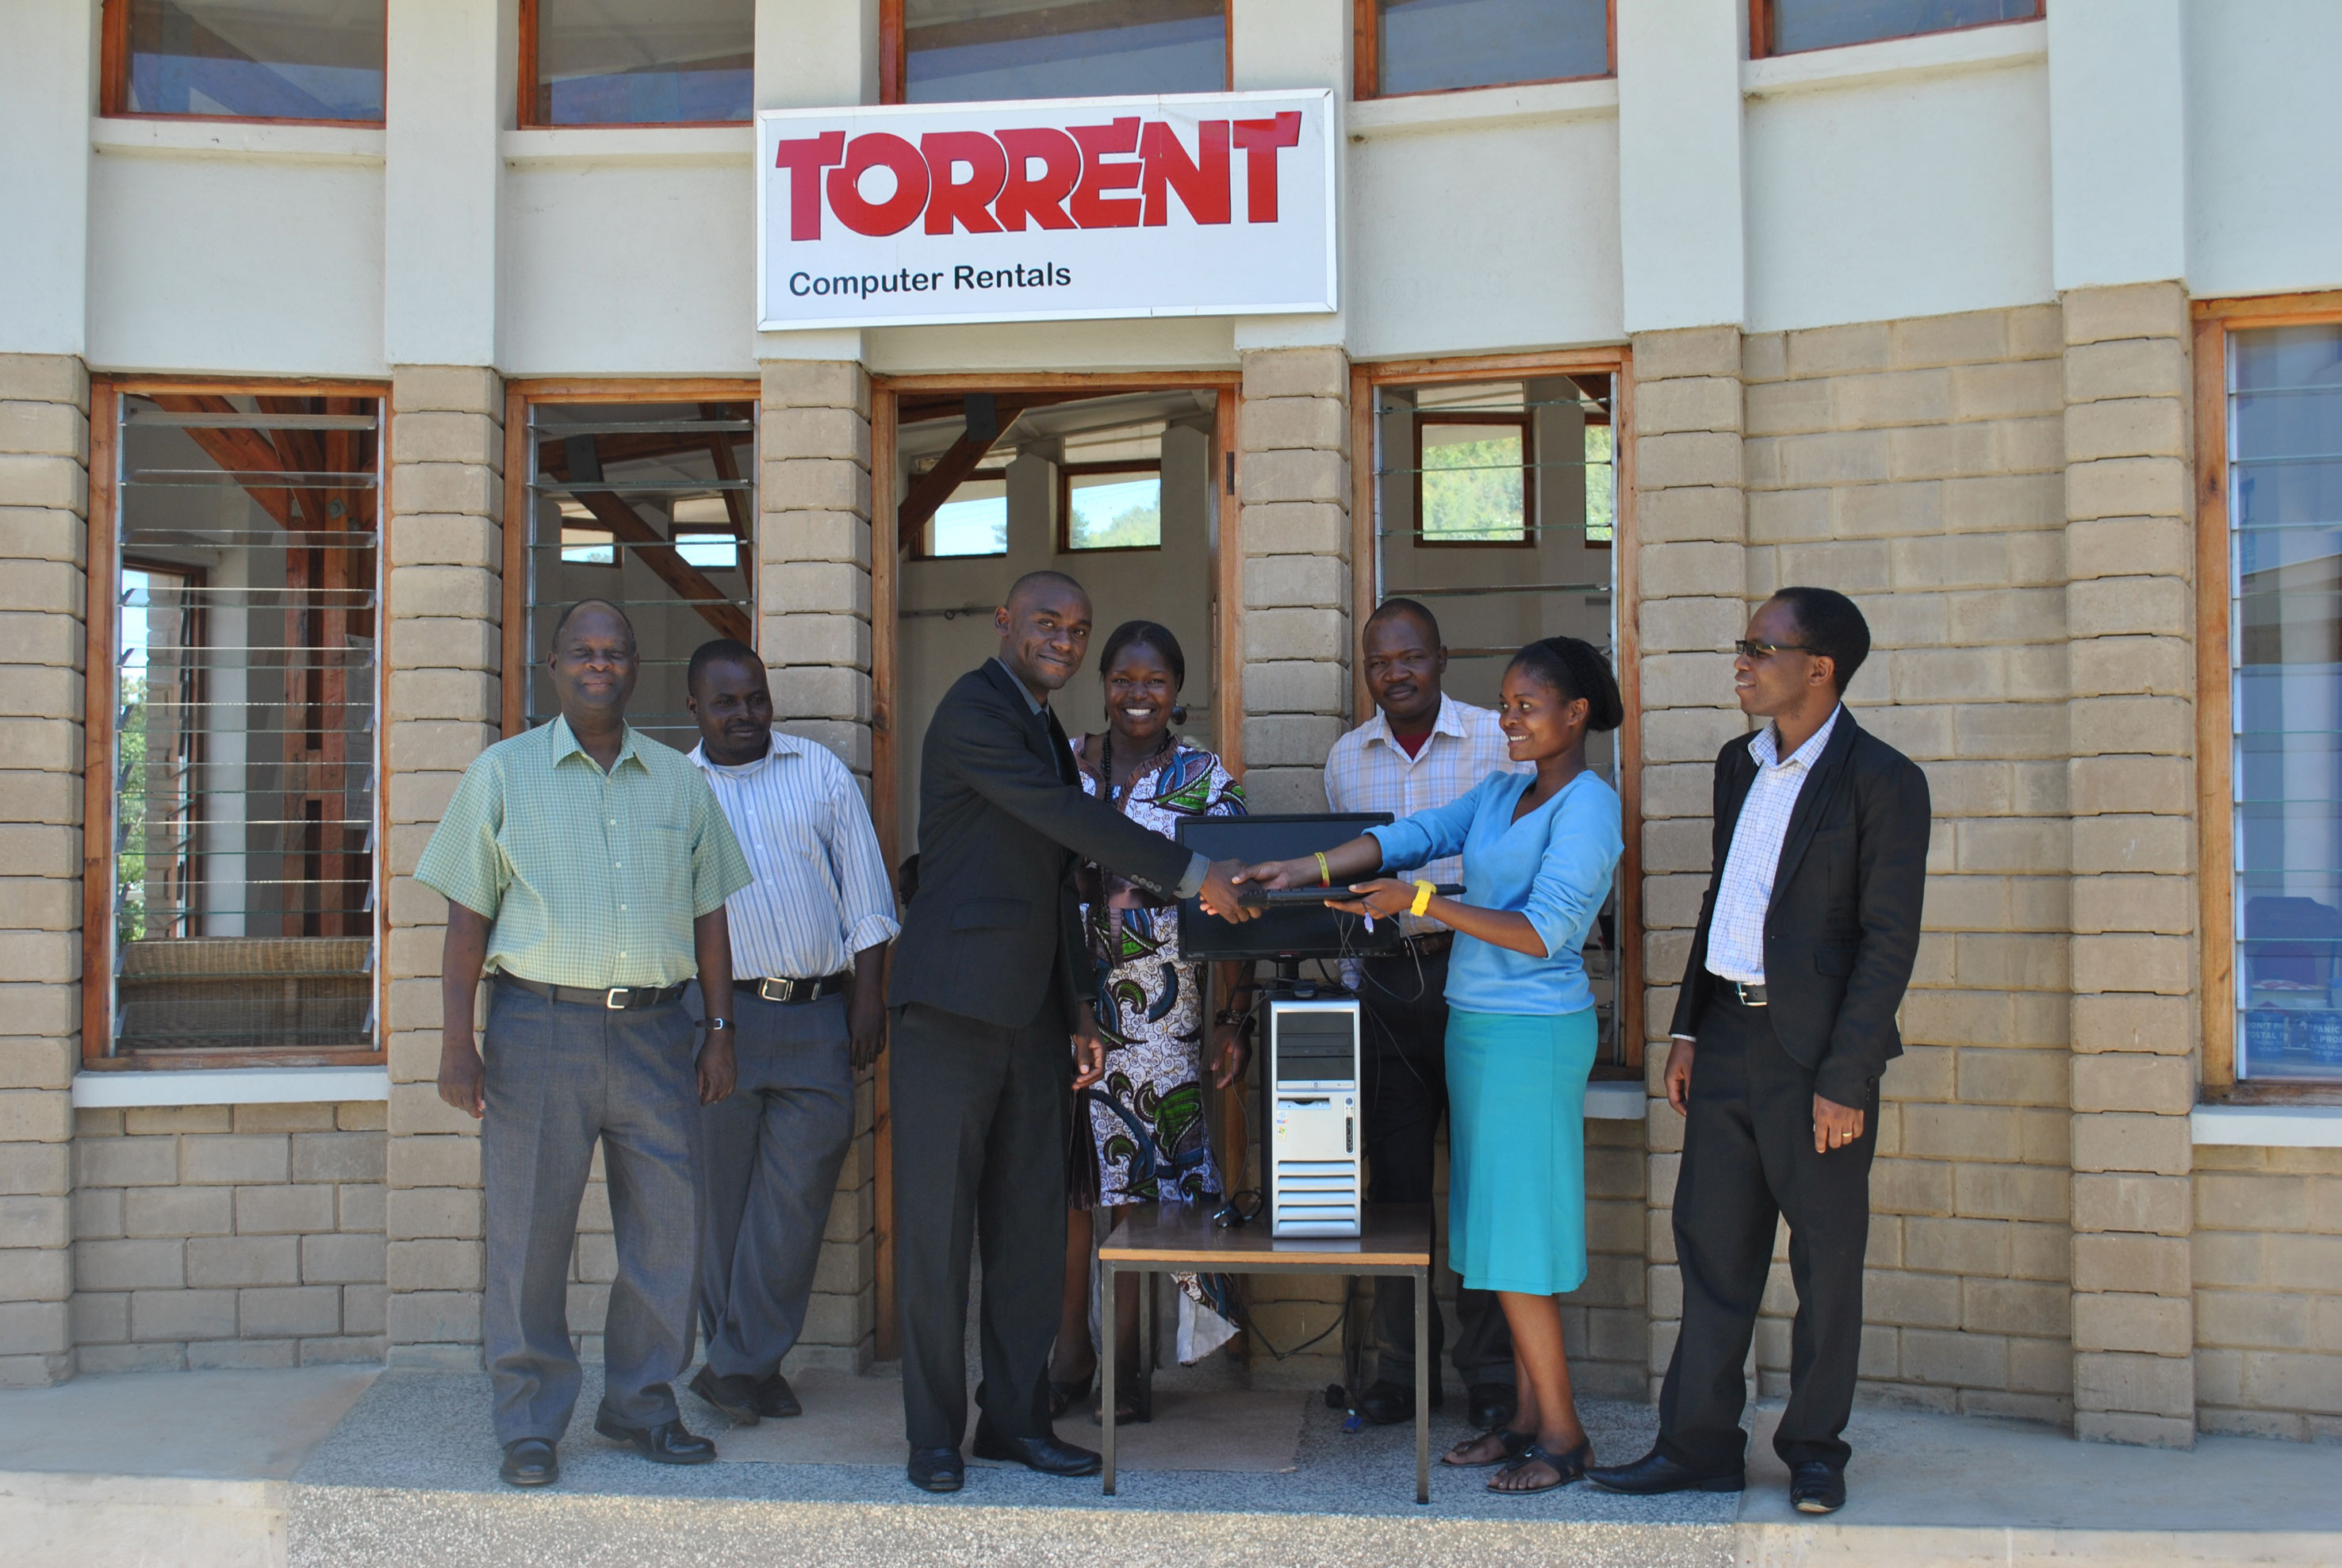 The Torrent team in their new home 2013